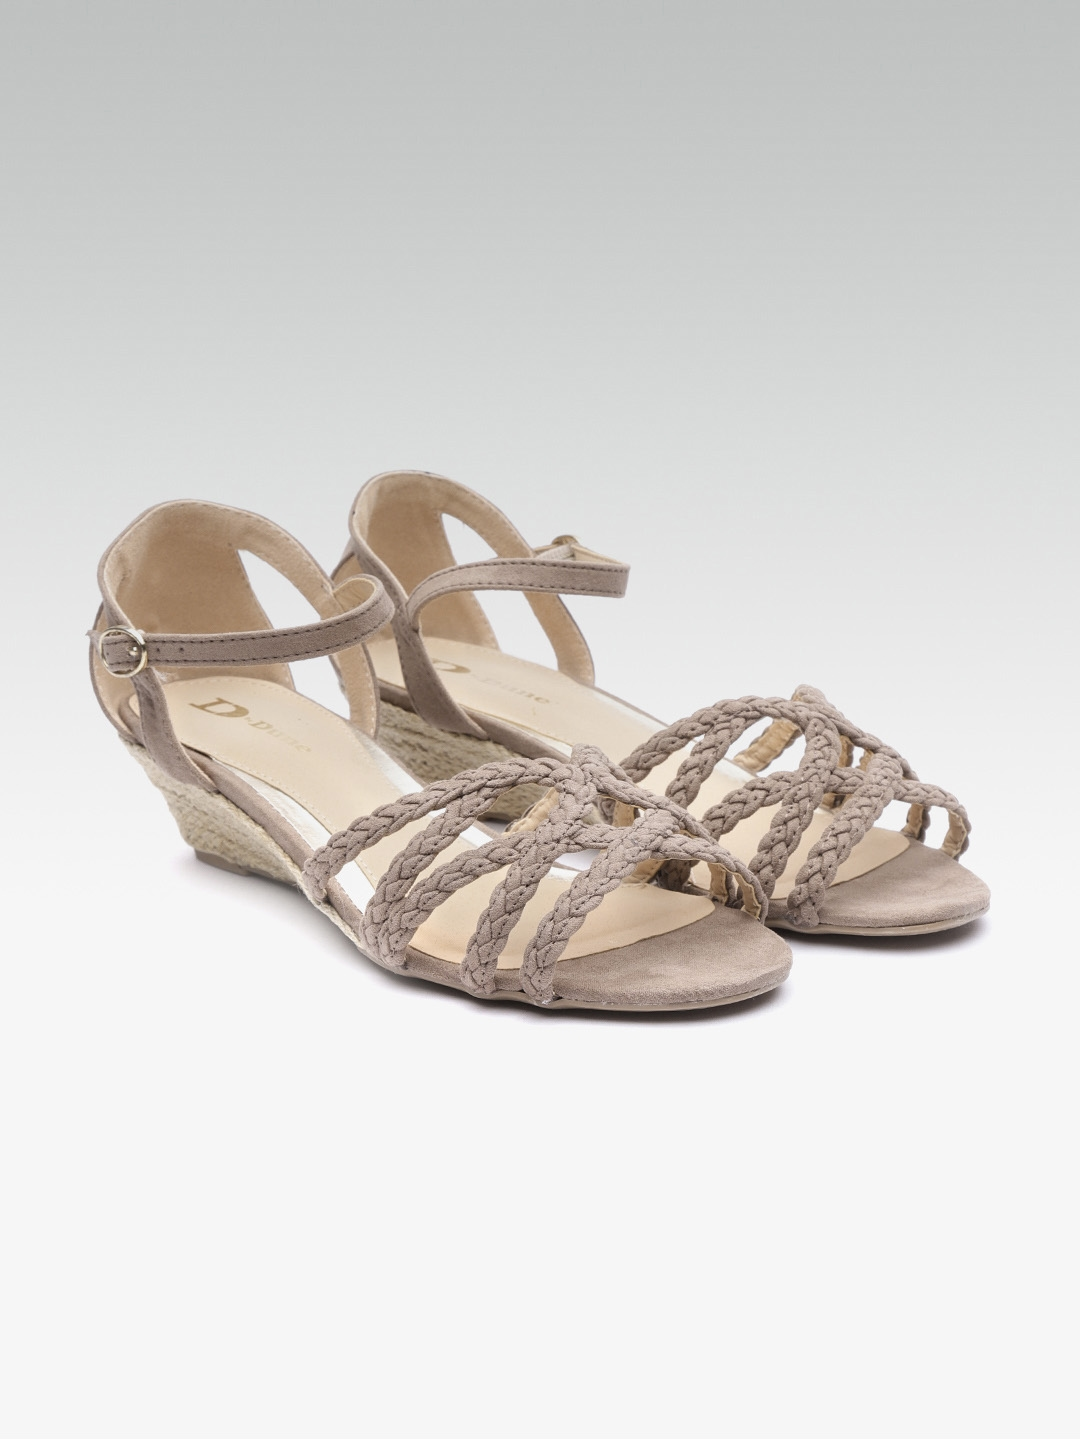 da93cbb460 Buy Dune London Women Taupe Braided Wedges - Heels for Women 8300151 ...